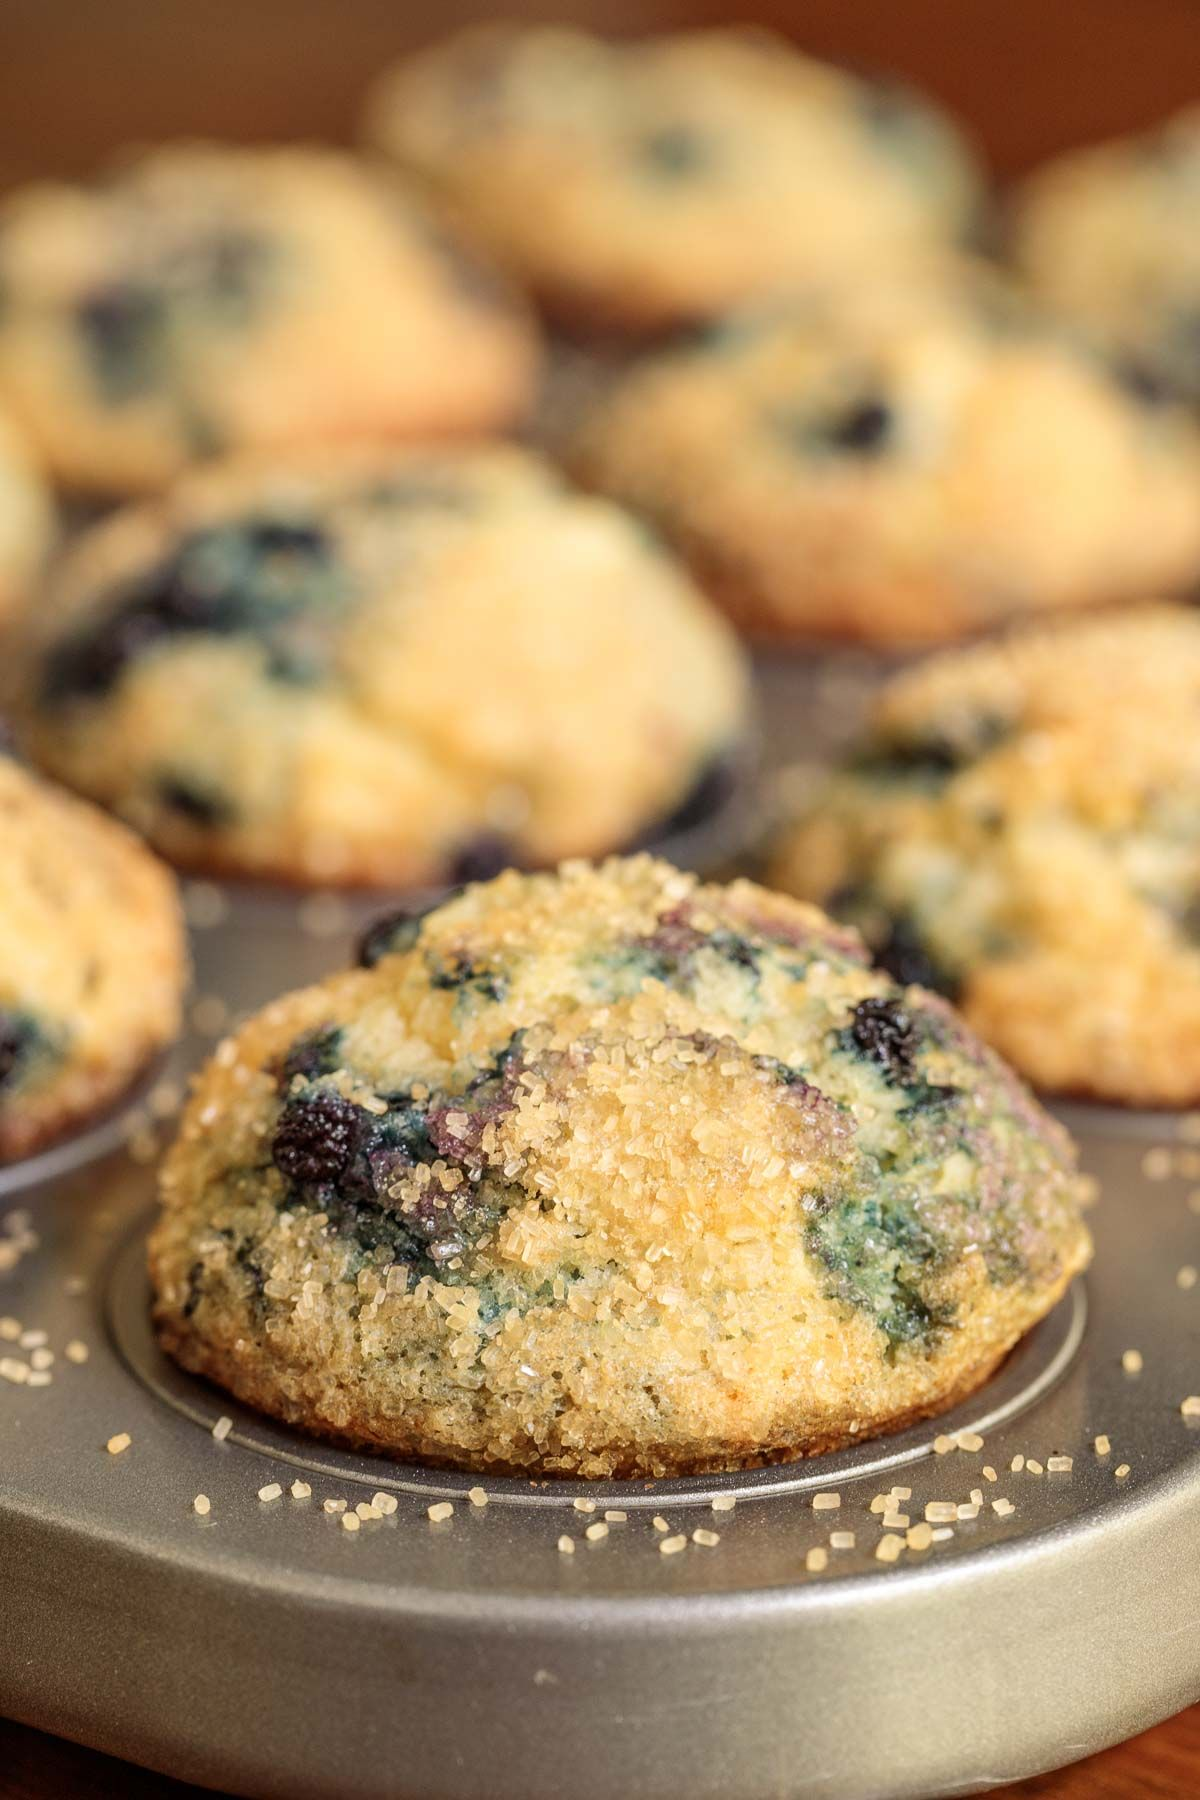 Copycat Starbucks Blueberry Muffins Recipe Blue Berry Muffins Starbucks Blueberry Muffin Best Blueberry Muffins